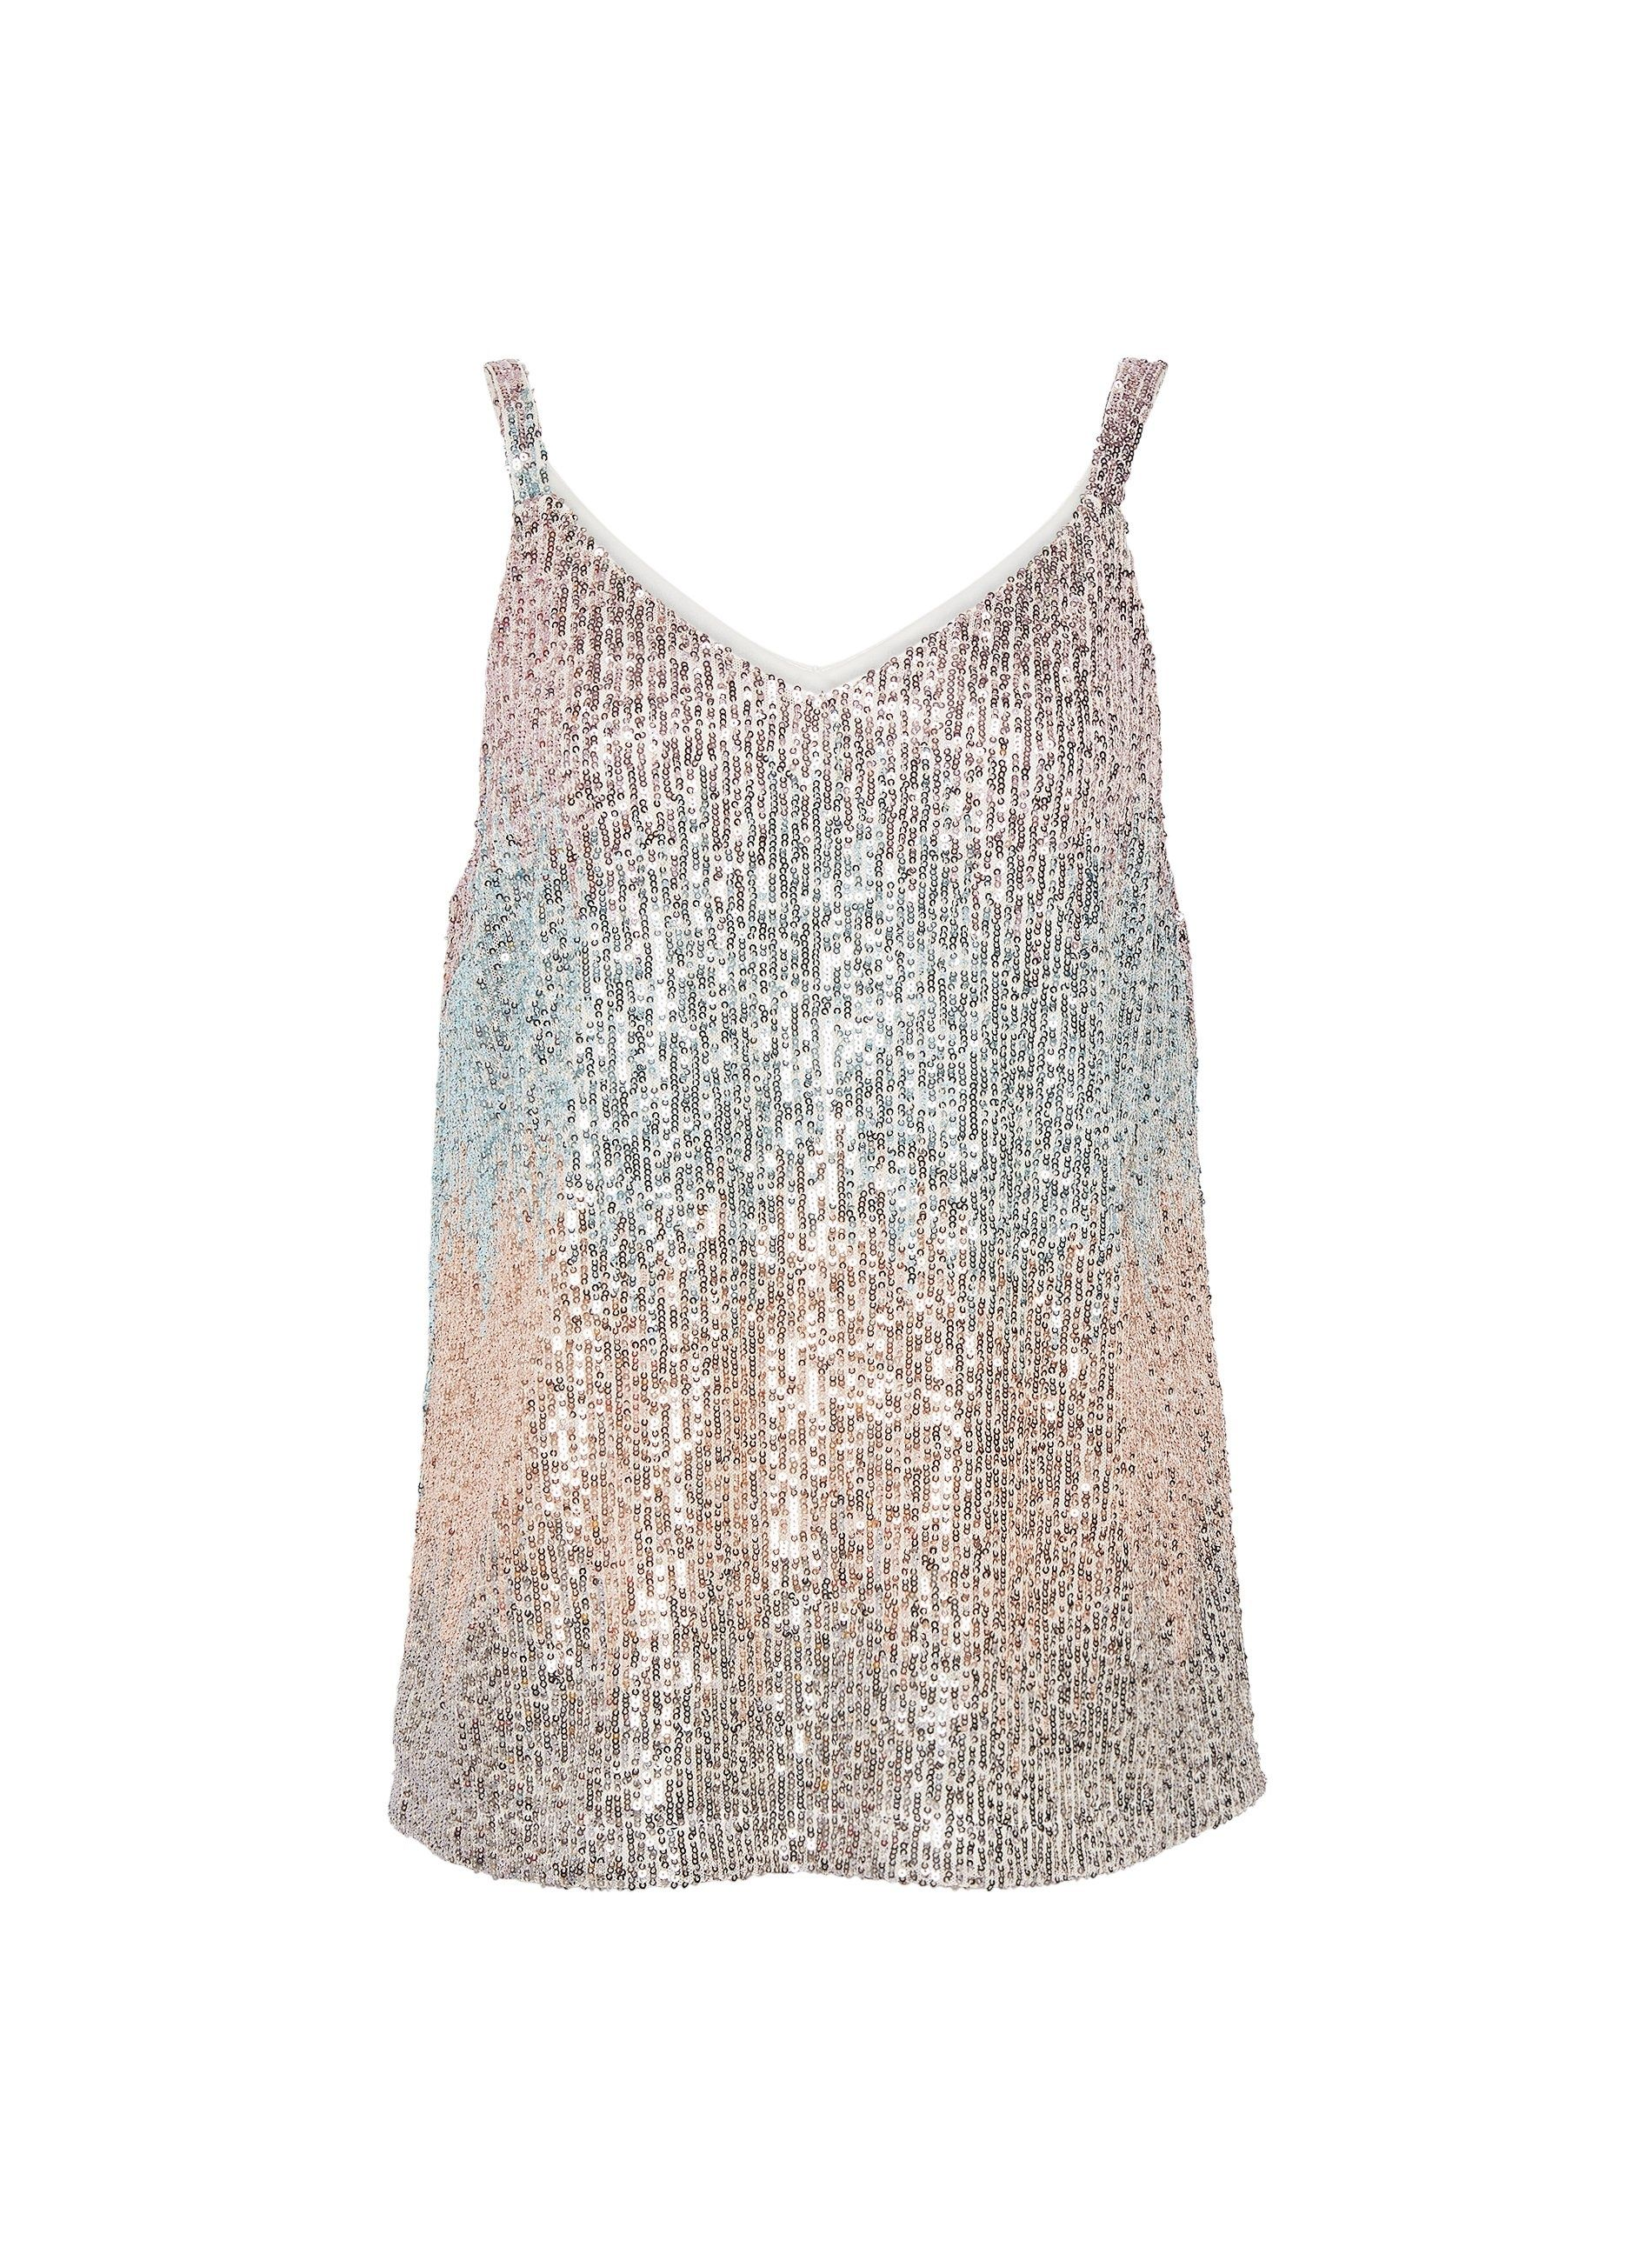 Dorothy Perkins Womens Multi Coloured Sequin Camisole Top V-Neck Sleeveless